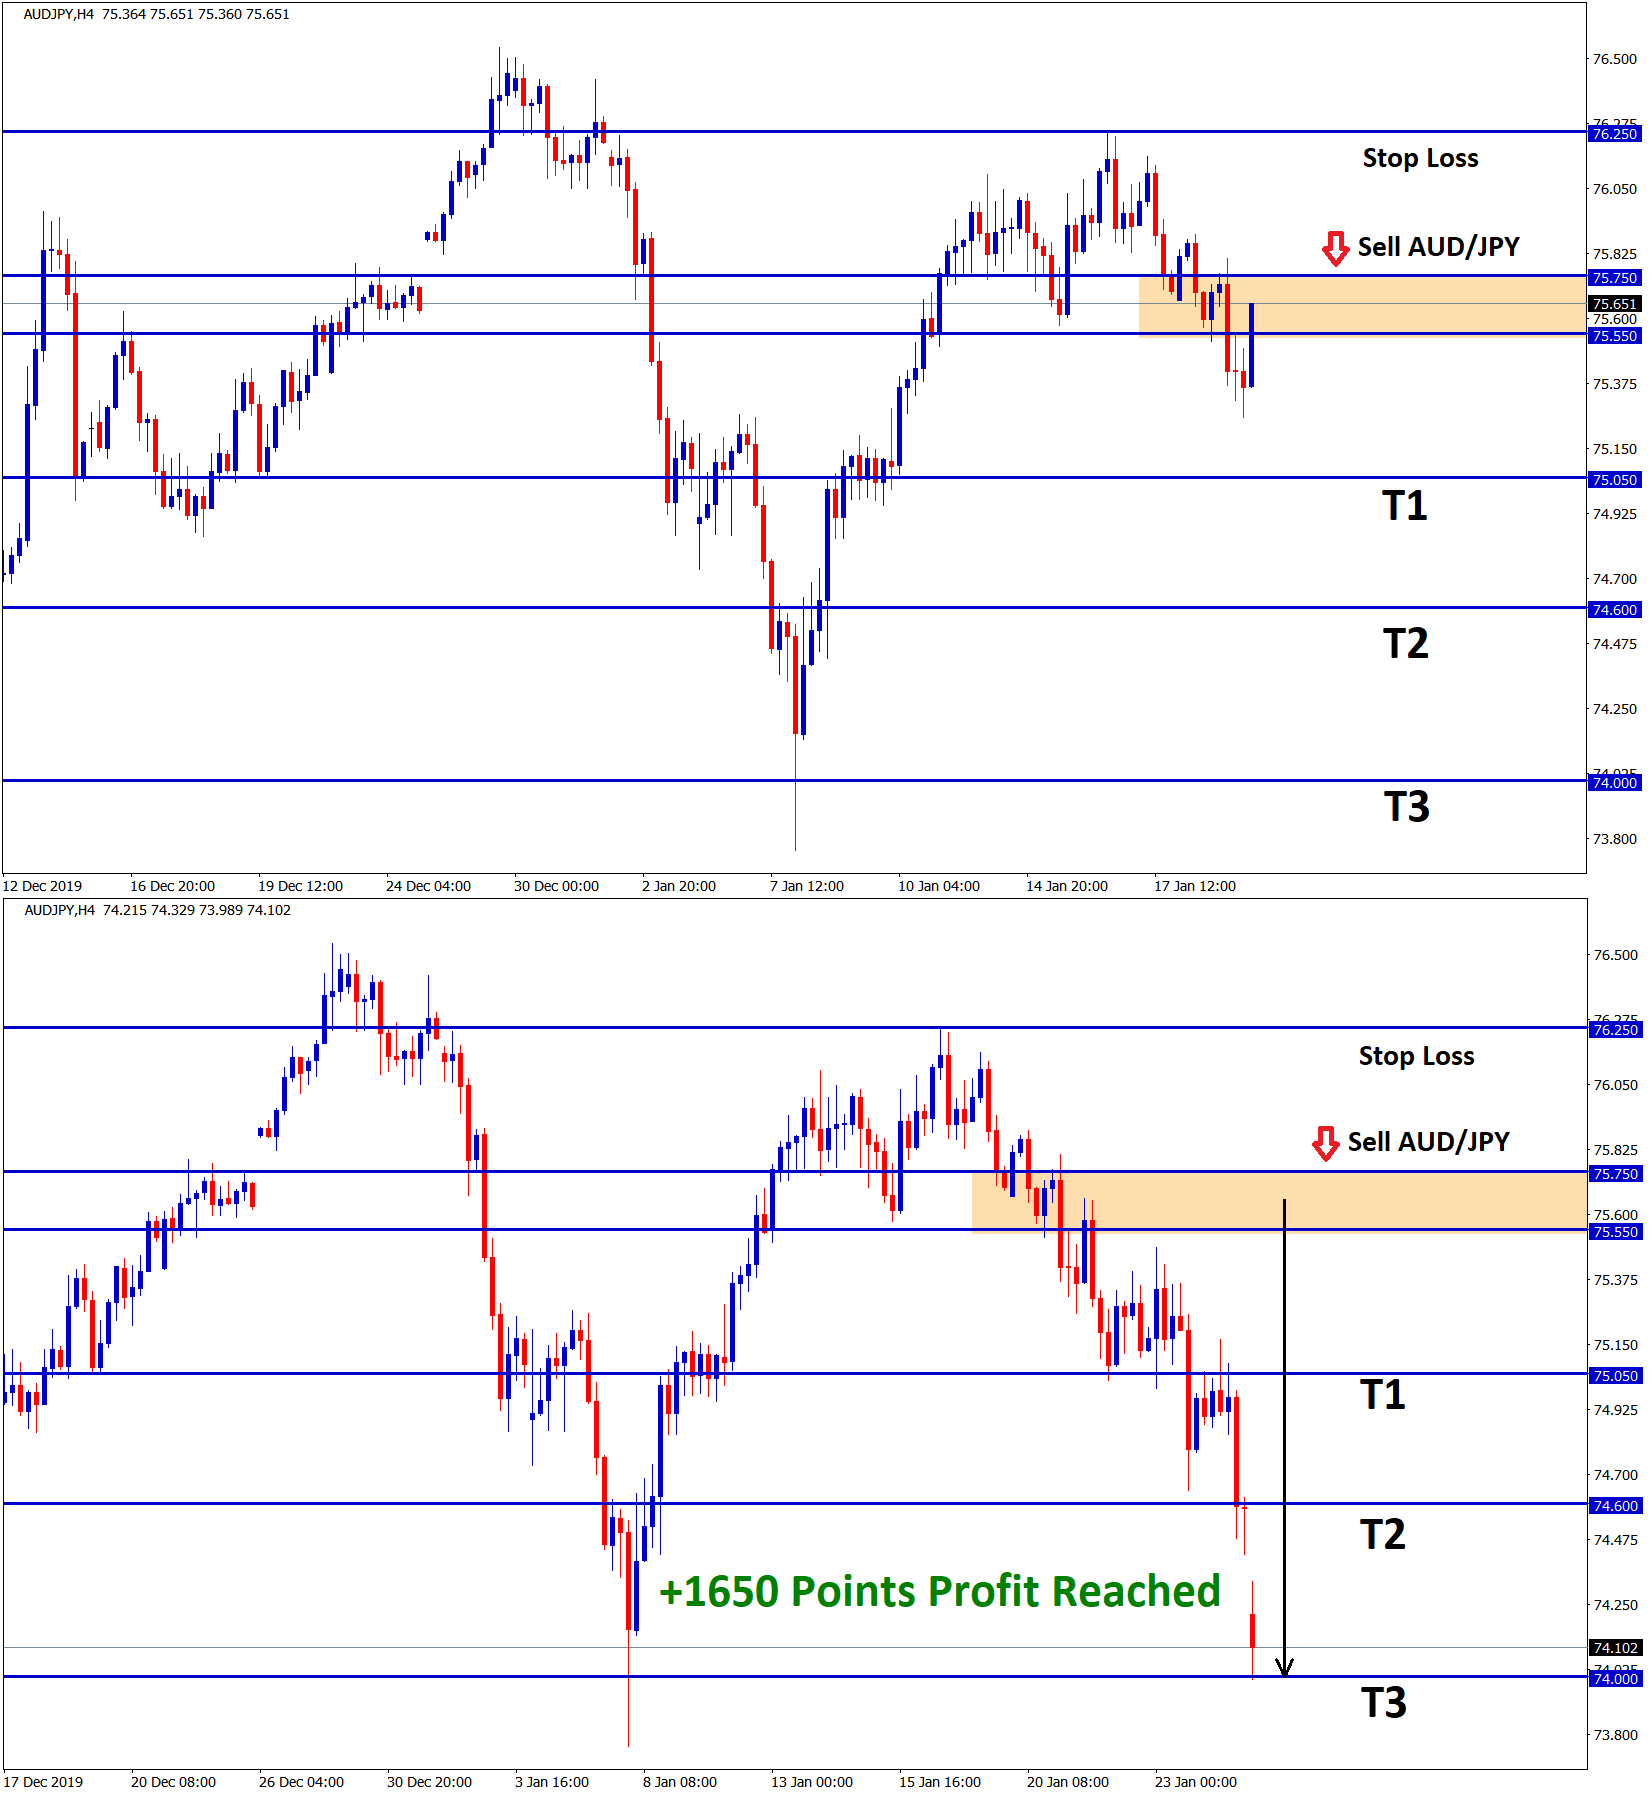 aud jpy touched our take profit in sell signal